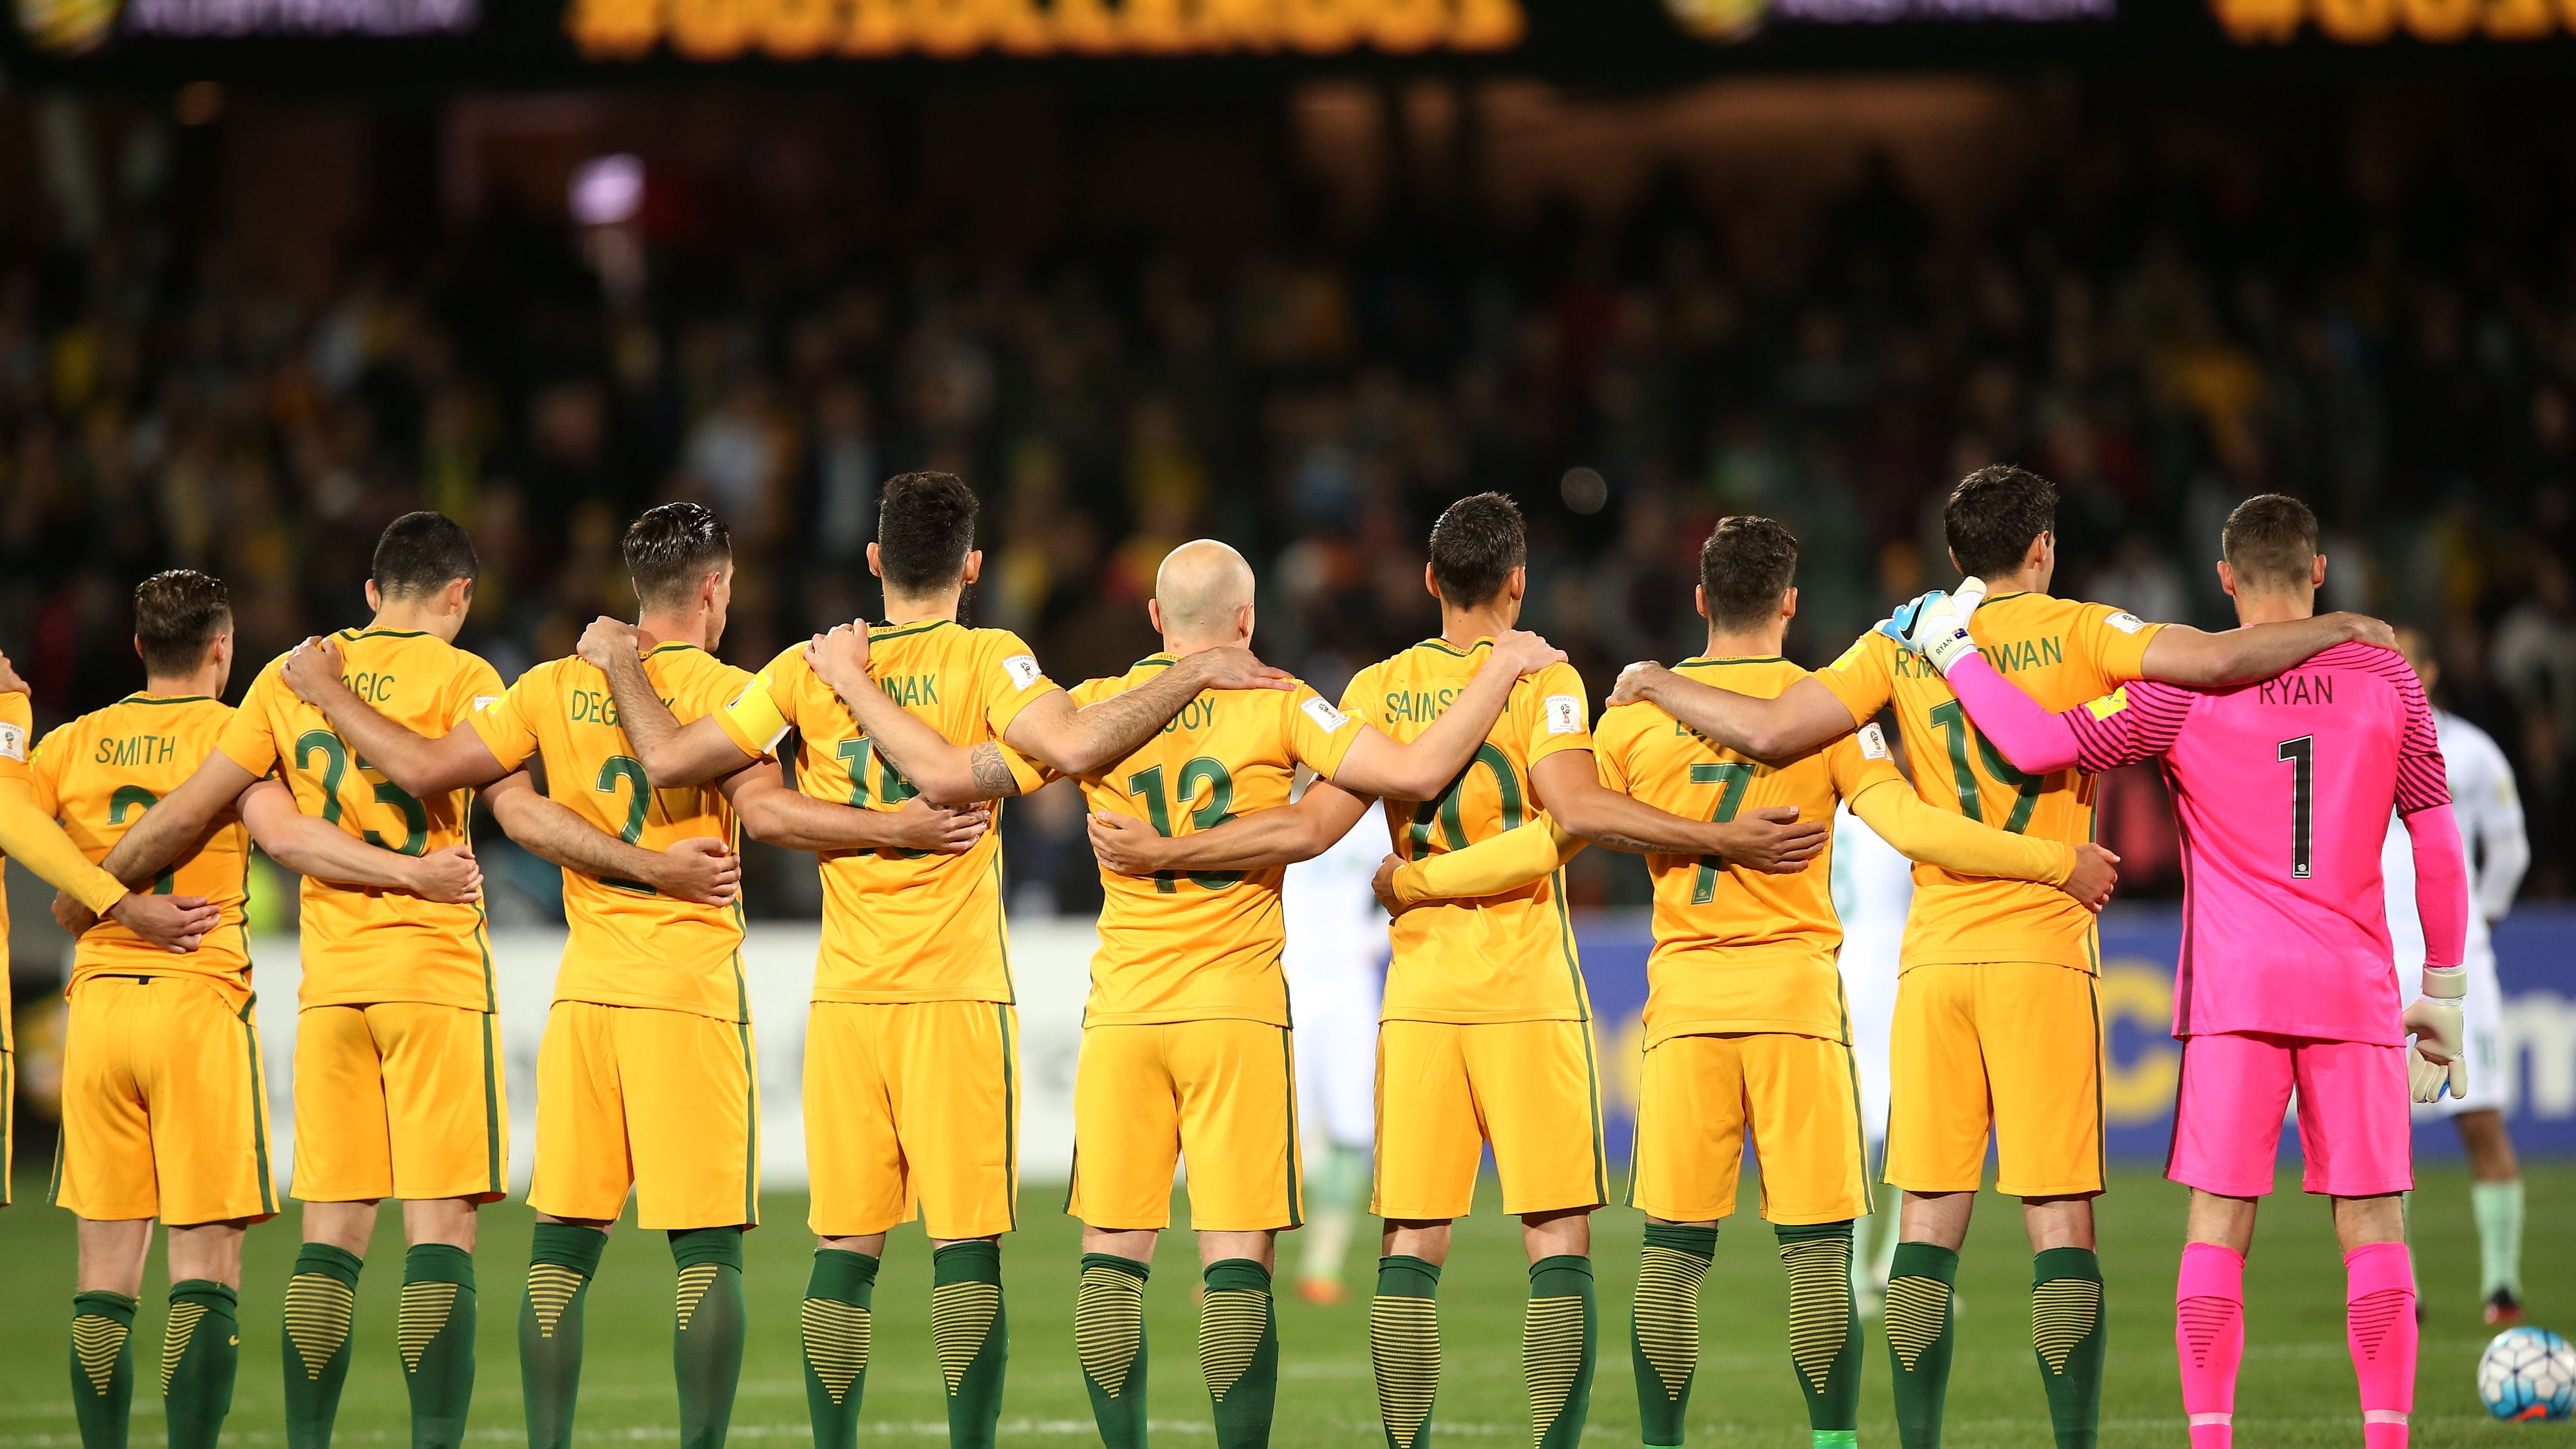 Wondering where you can watch the Caltex Socceroos in the World Cup?